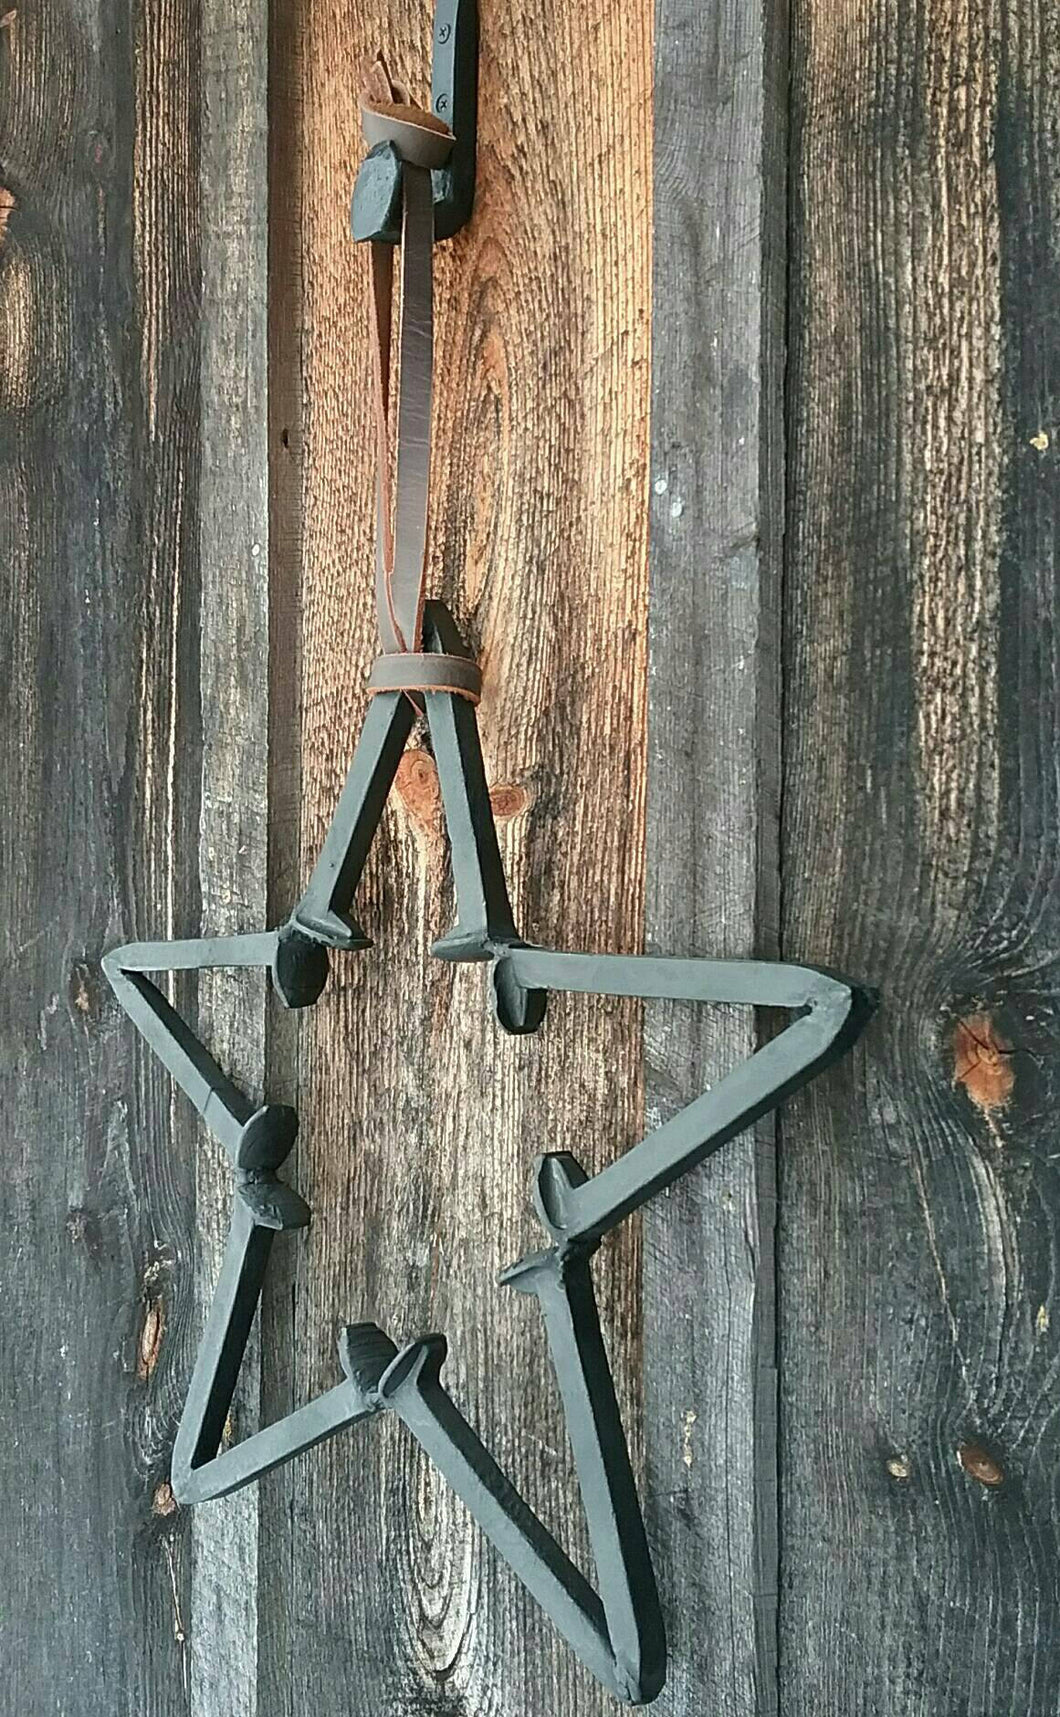 Rustic Repurposed Railroad Spike Barn Star. Three Piece Set Includes Railroad Spike Hook and Amish Harness Leather Strap